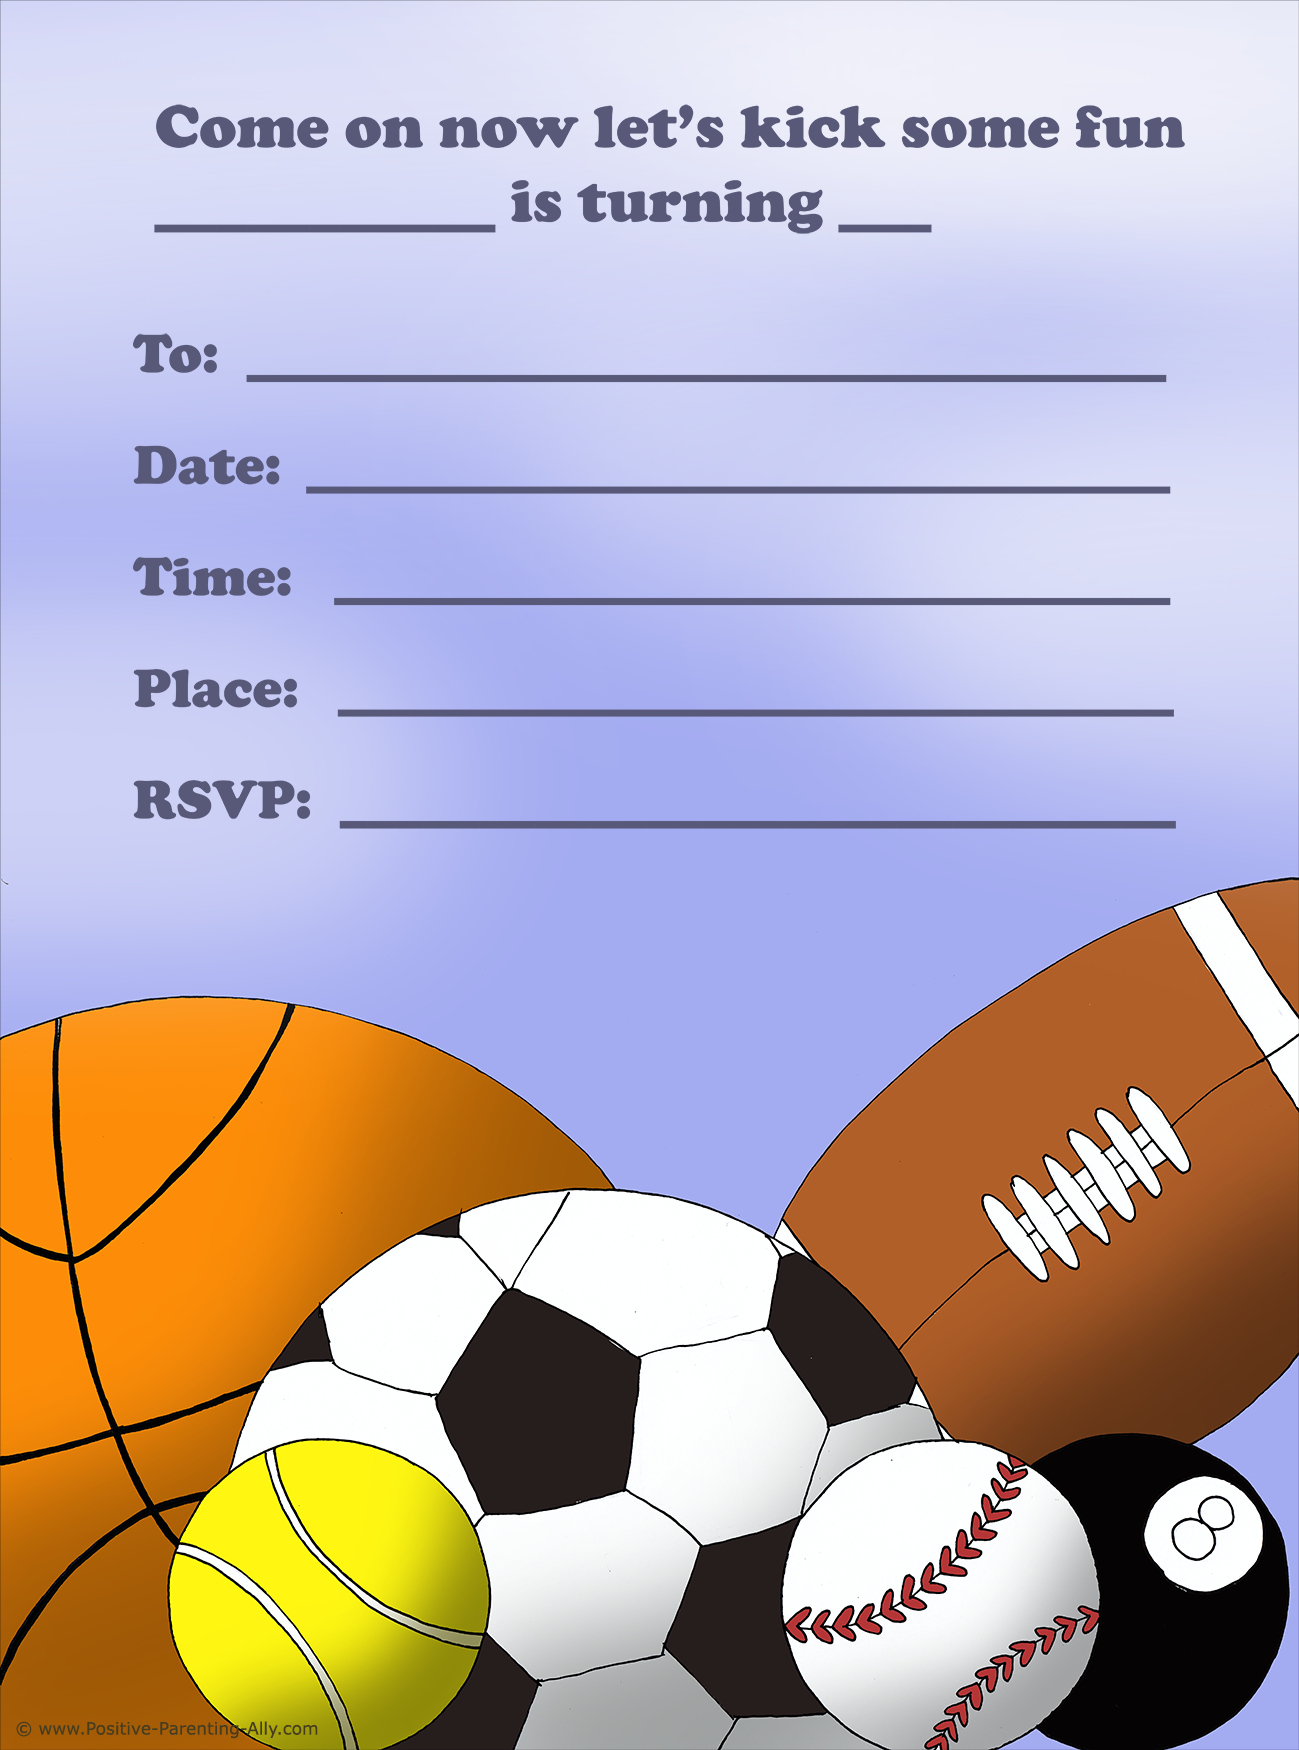 image regarding Free Printable Football Invitations known as Cost-free Birthday Invites toward Print for Youngsters: Pick out Your Concept